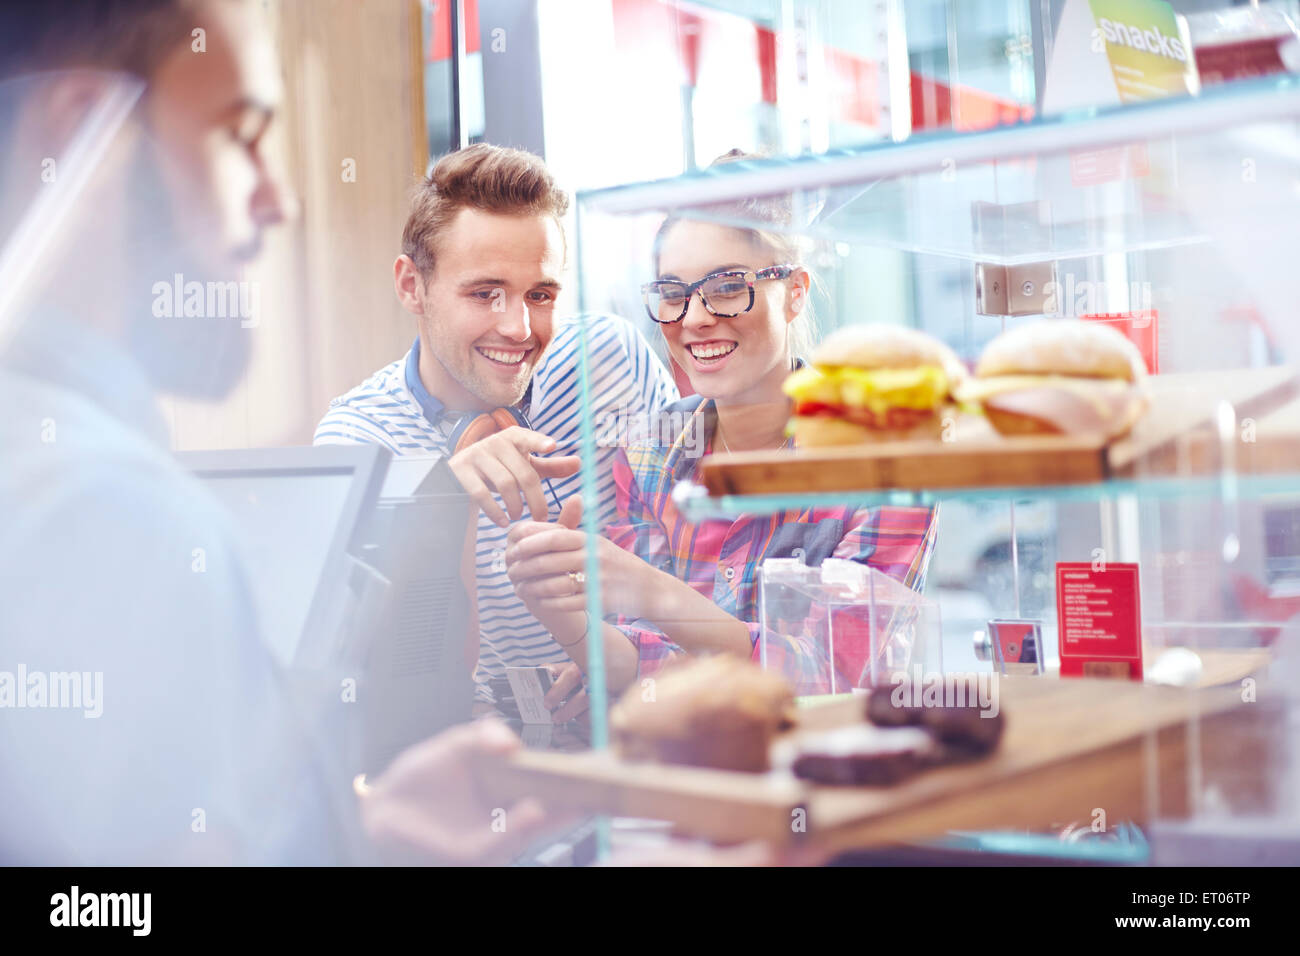 Couple choosing food at display case in cafe - Stock Image